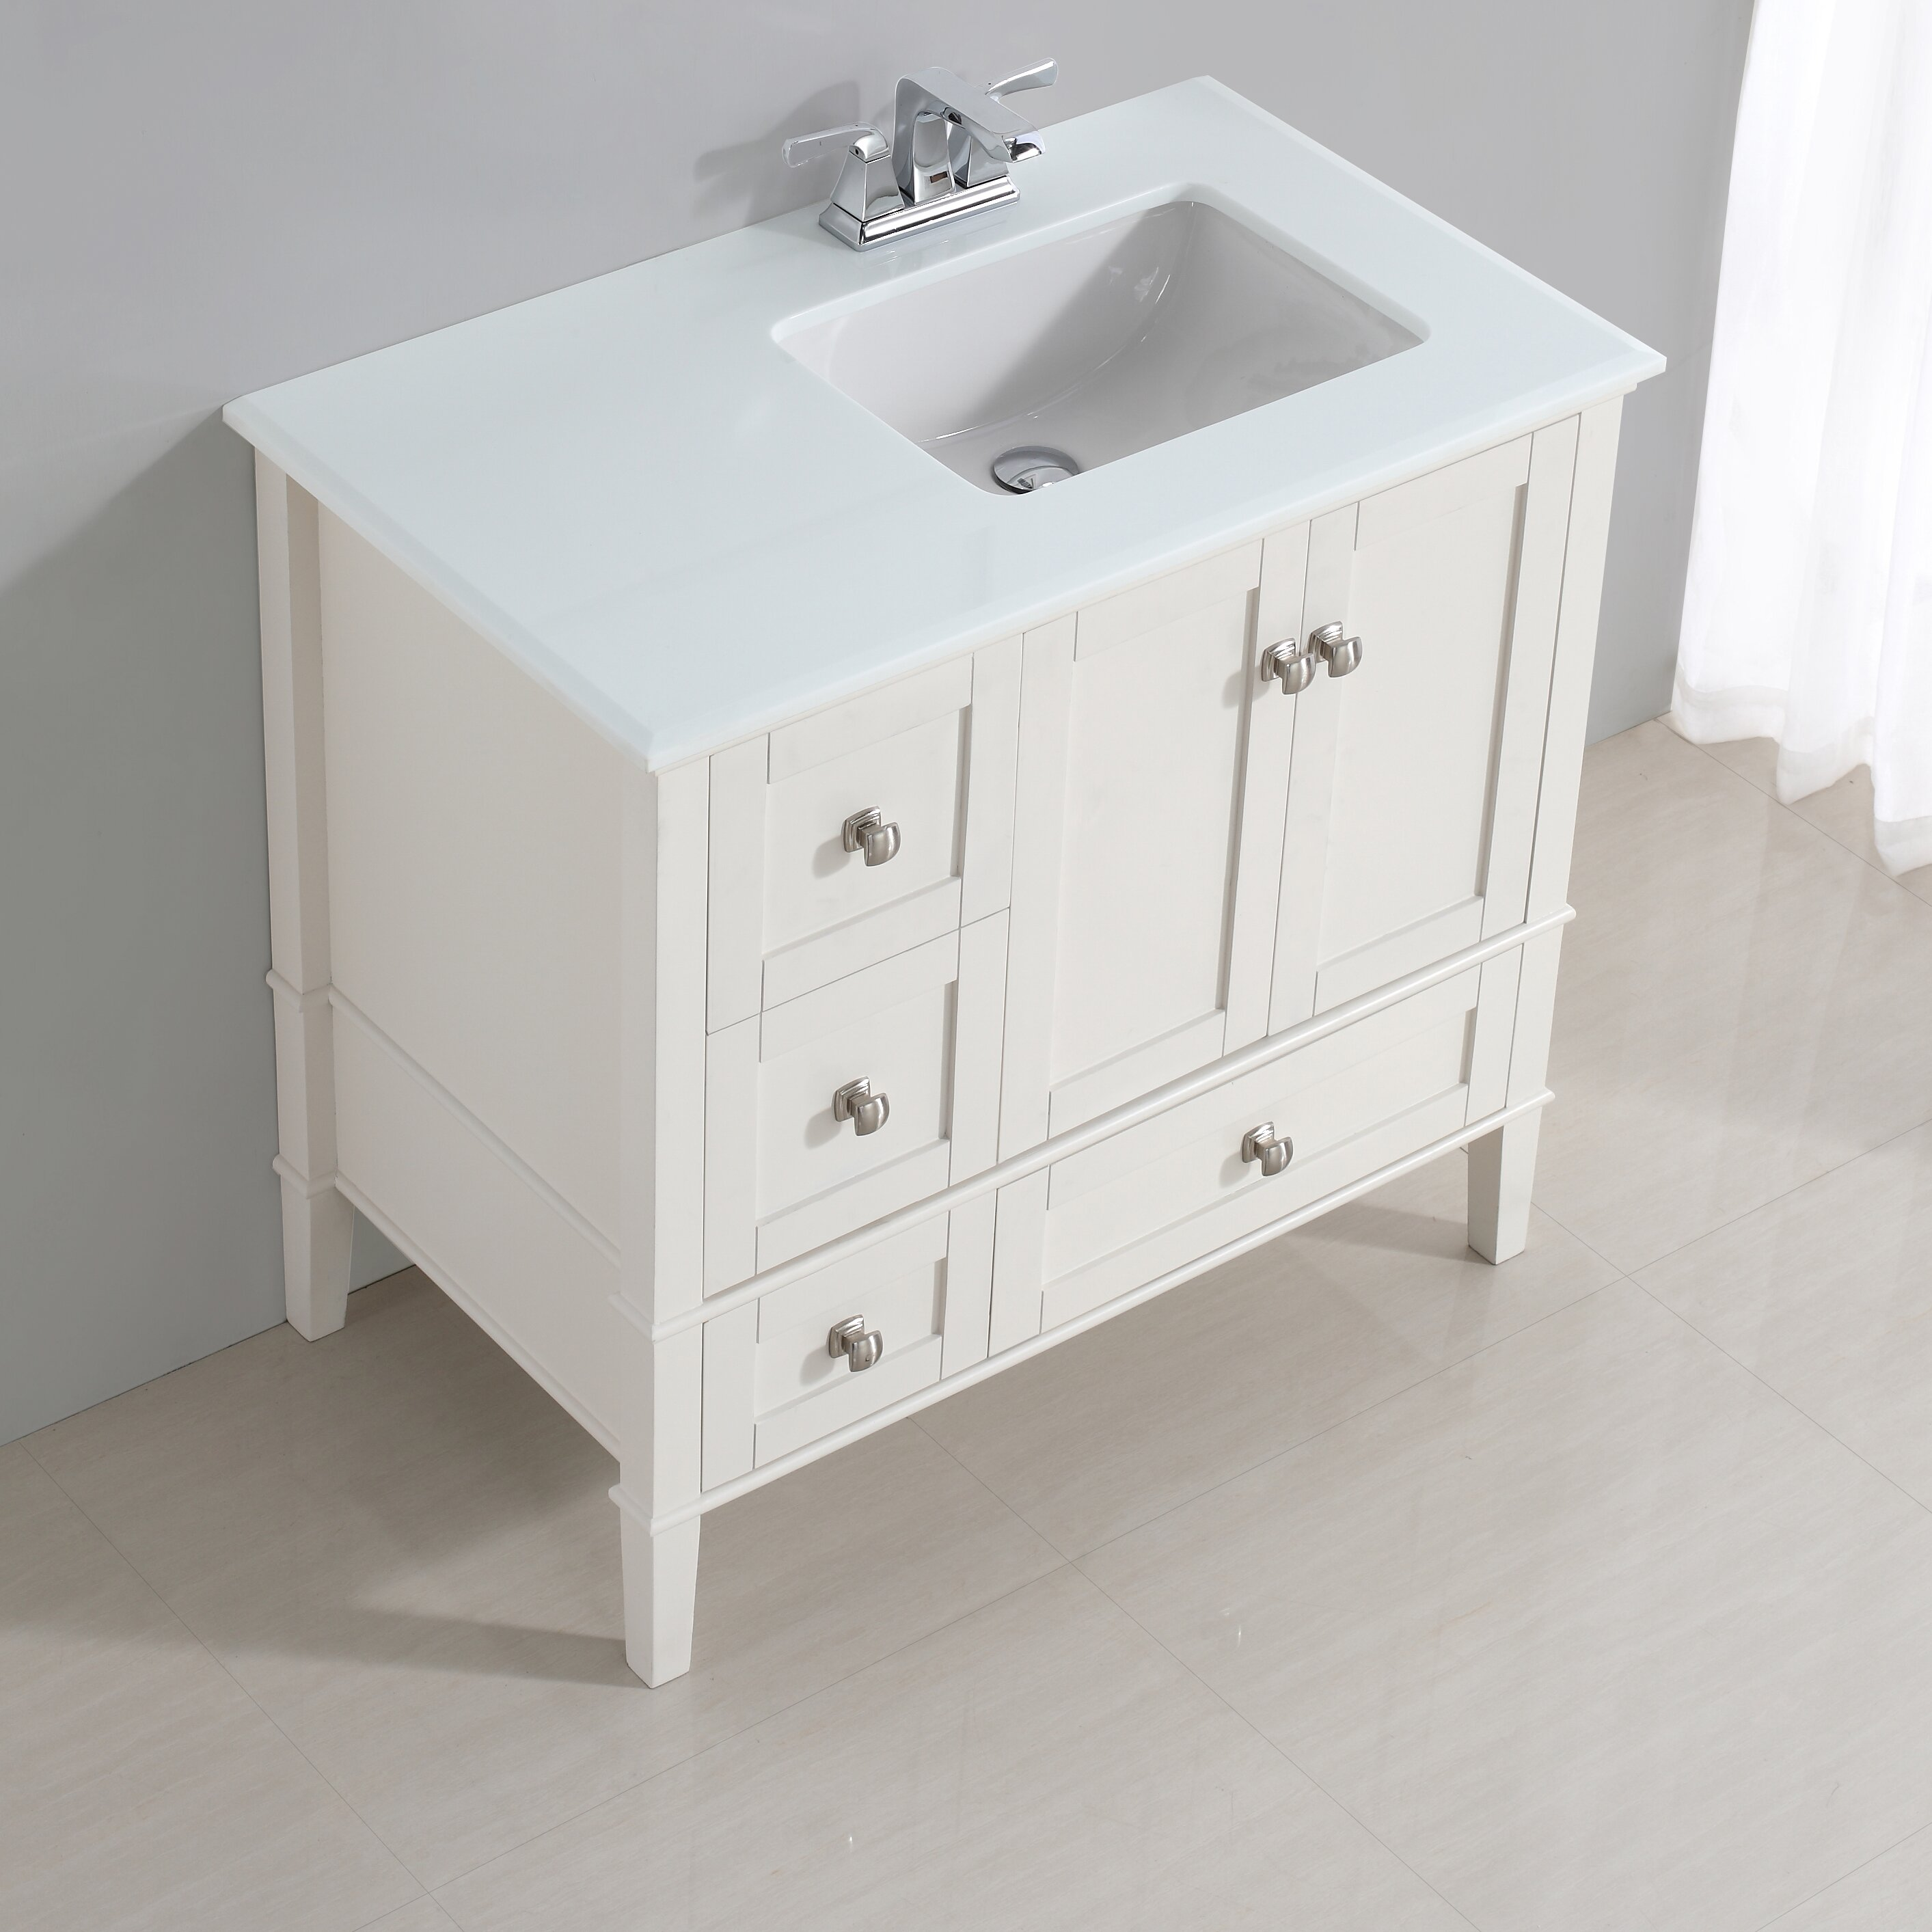 Offset Vanity Tops Interesting Bathroom No Sink